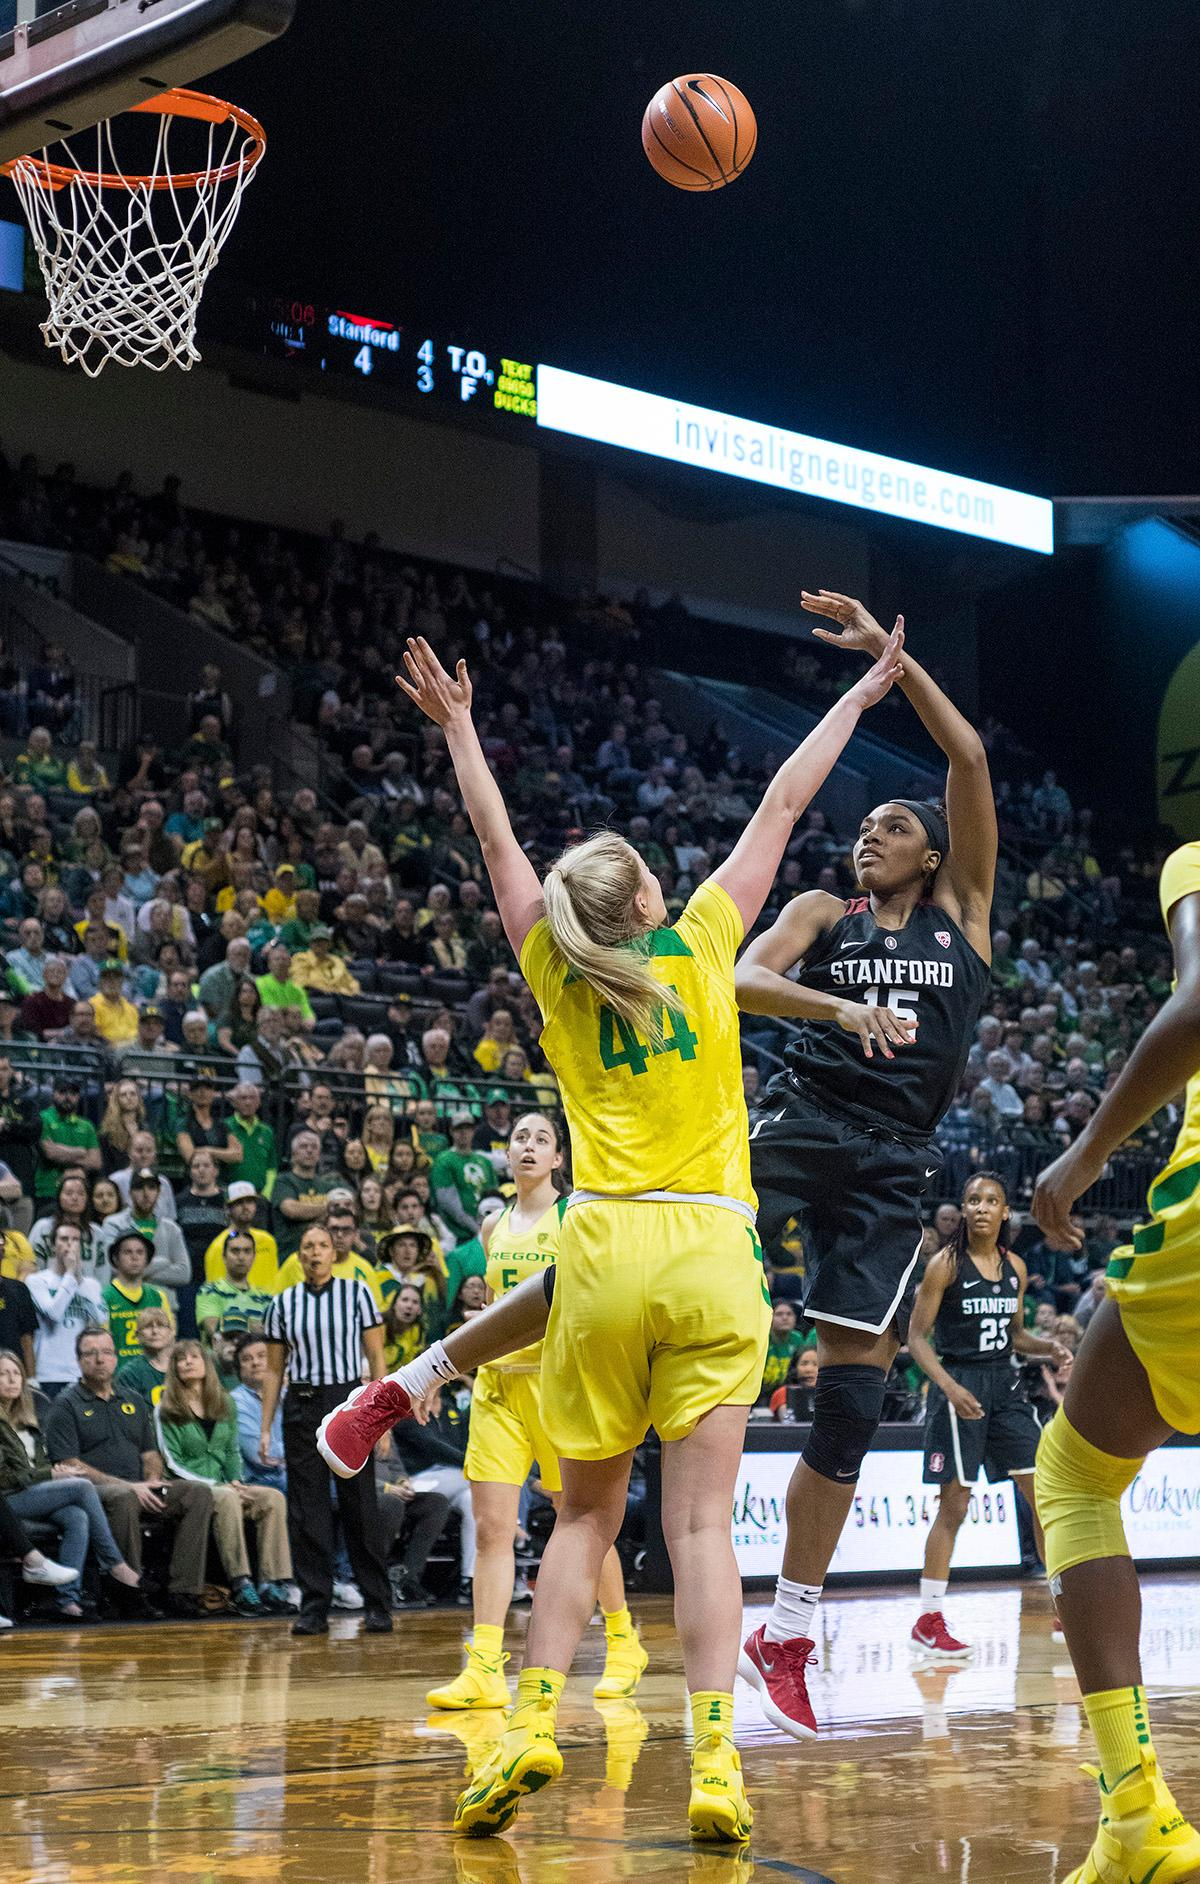 Stanford Cardinal Maya Dodson (#15) aims for the basket. The Stanford Cardinal defeated the Oregon Ducks 78-65 on Sunday afternoon at Matthew Knight Arena. Stanford is now 10-2 in conference play and with this loss the Ducks drop to 10-2. Leading the Stanford Cardinal was Brittany McPhee with 33 points, Alanna Smith with 14 points, and Kiana Williams with 14 points. For the Ducks Sabrina Ionescu led with 22 points, Ruthy Hebard added 16 points, and Satou Sabally put in 14 points. Photo by Rhianna Gelhart, Oregon News Lab